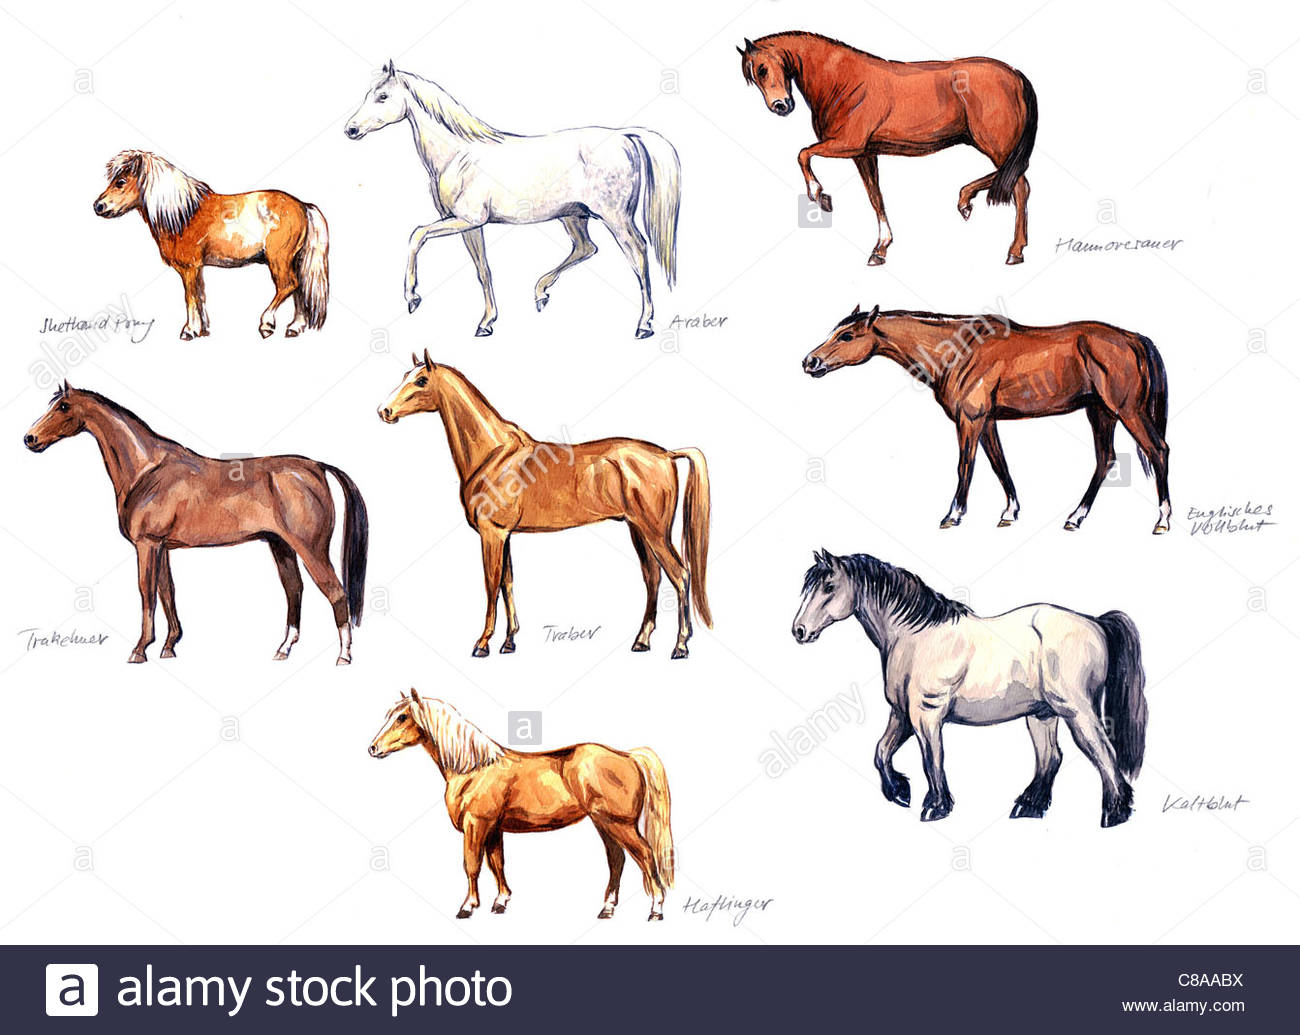 American Paint Horse Images